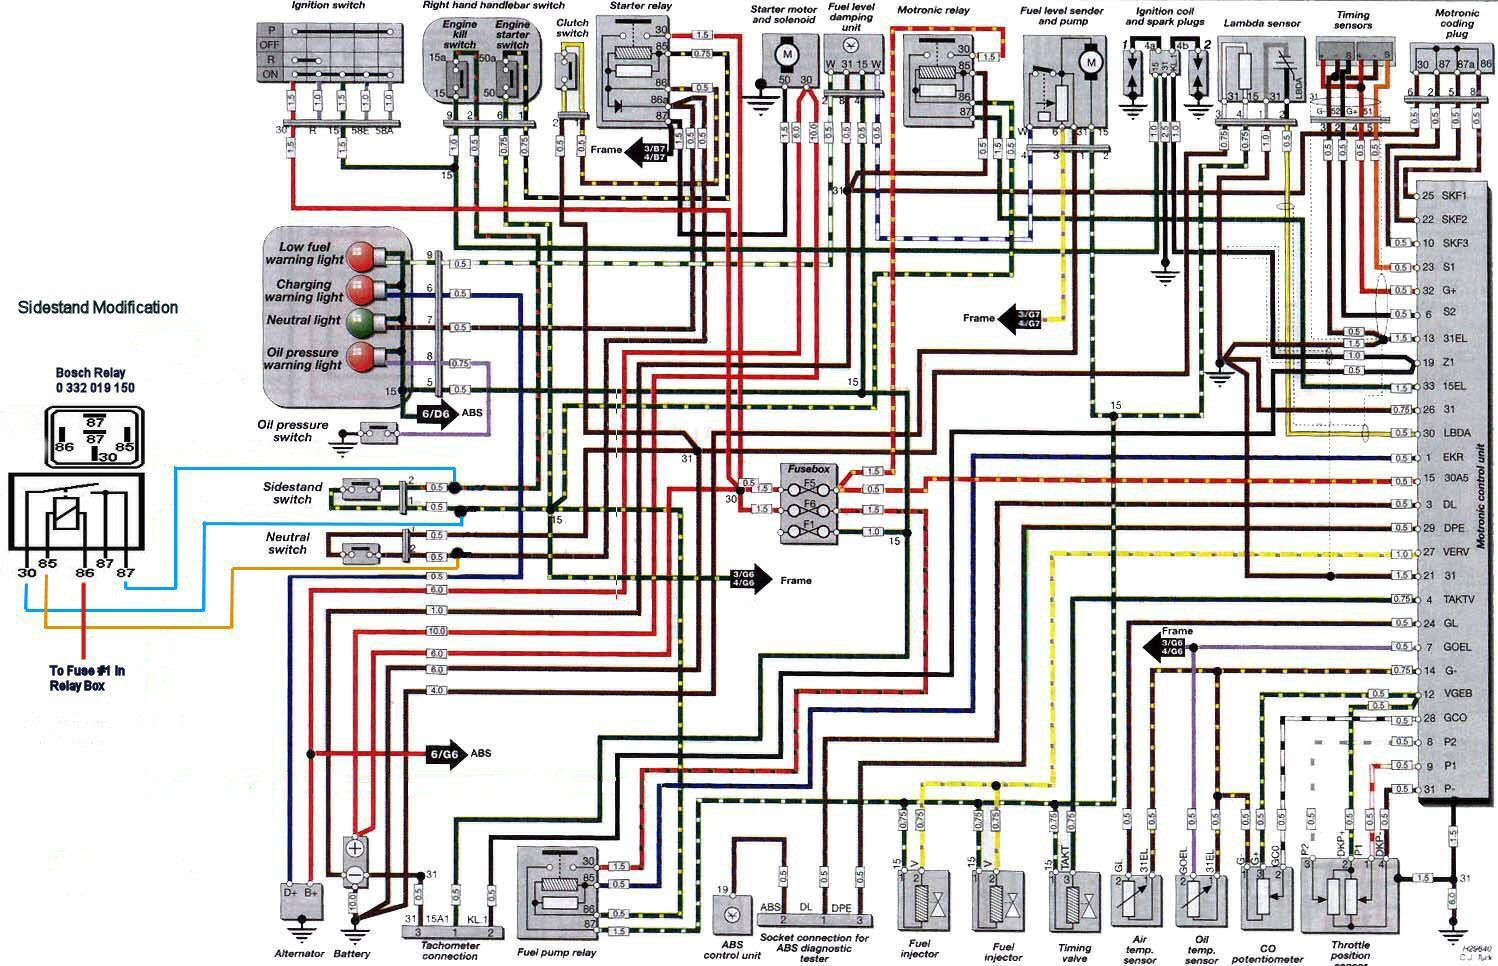 Bmw R1150rt Wiring Diagram Fender Jaguar Rhechangeconventioncollective: R1100rt P Fan Wiring Diagram At Gmaili.net